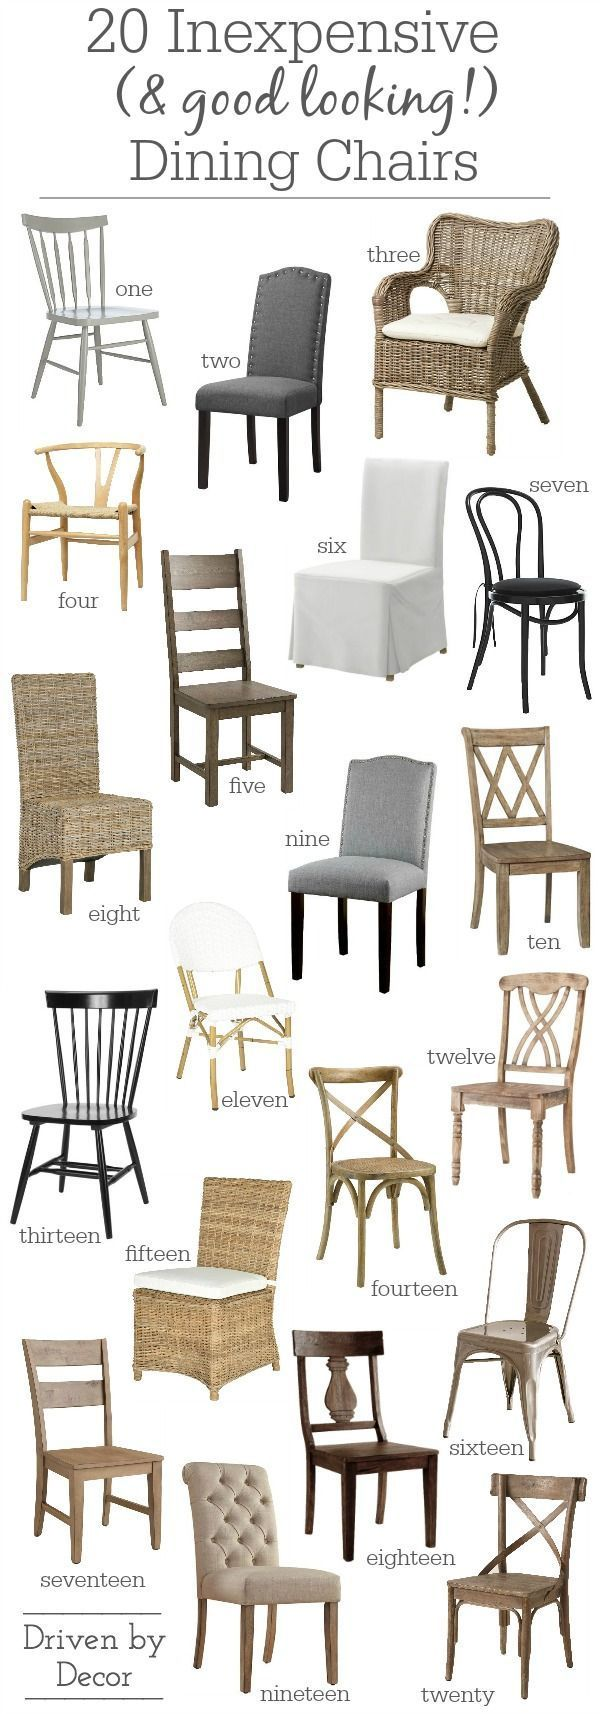 20 Inexpensive Dining Chairs That Dont Look Cheap Room SetsDining